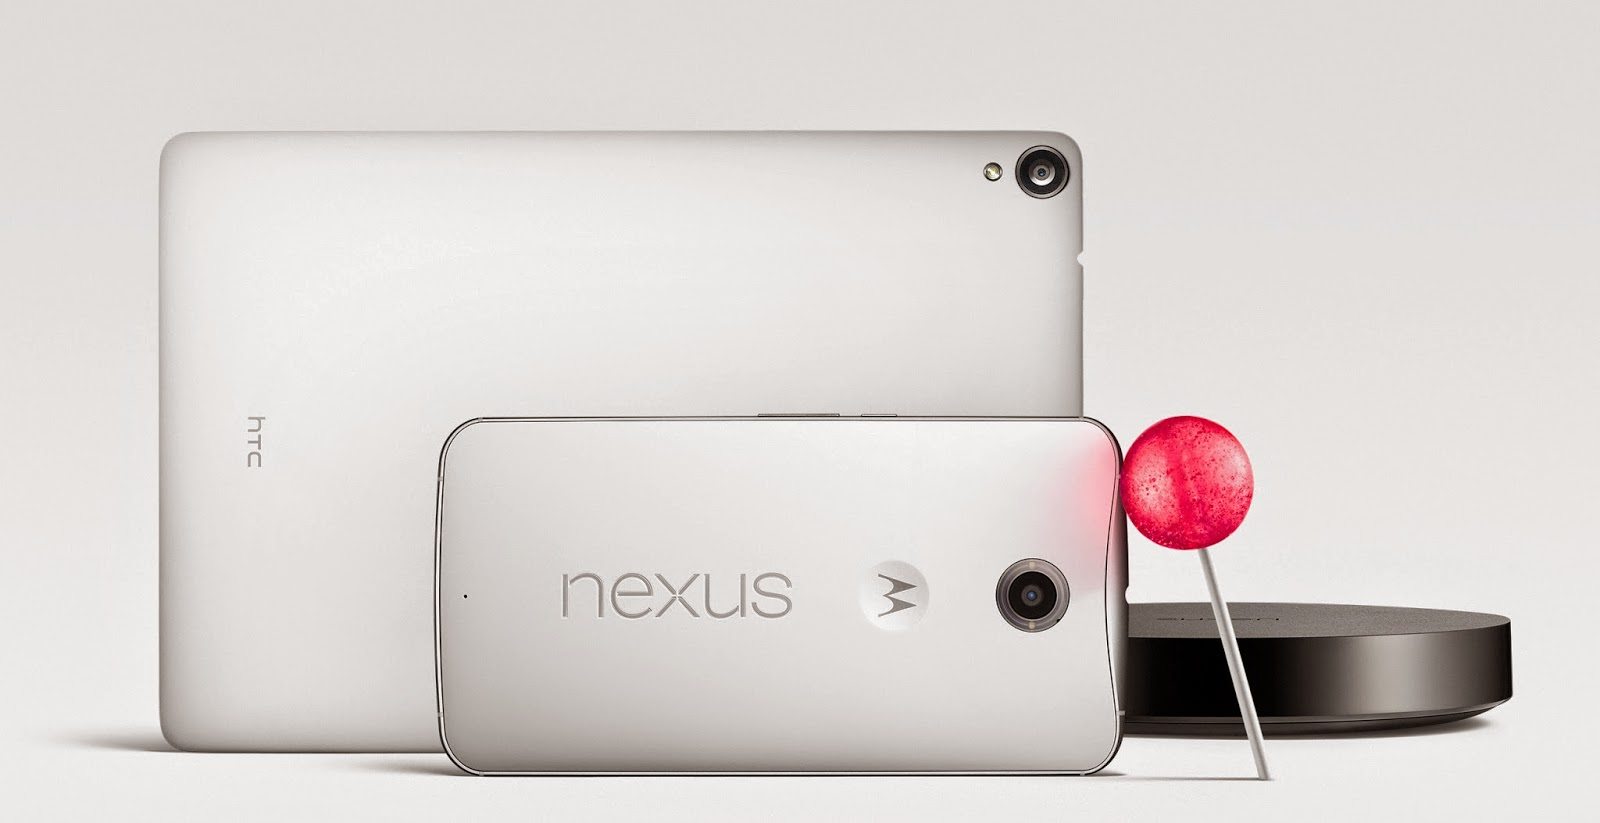 Sprint Nexus 6 smartphones in US tipped to receive Android 5.0.1 from 15 December: check your smartphones